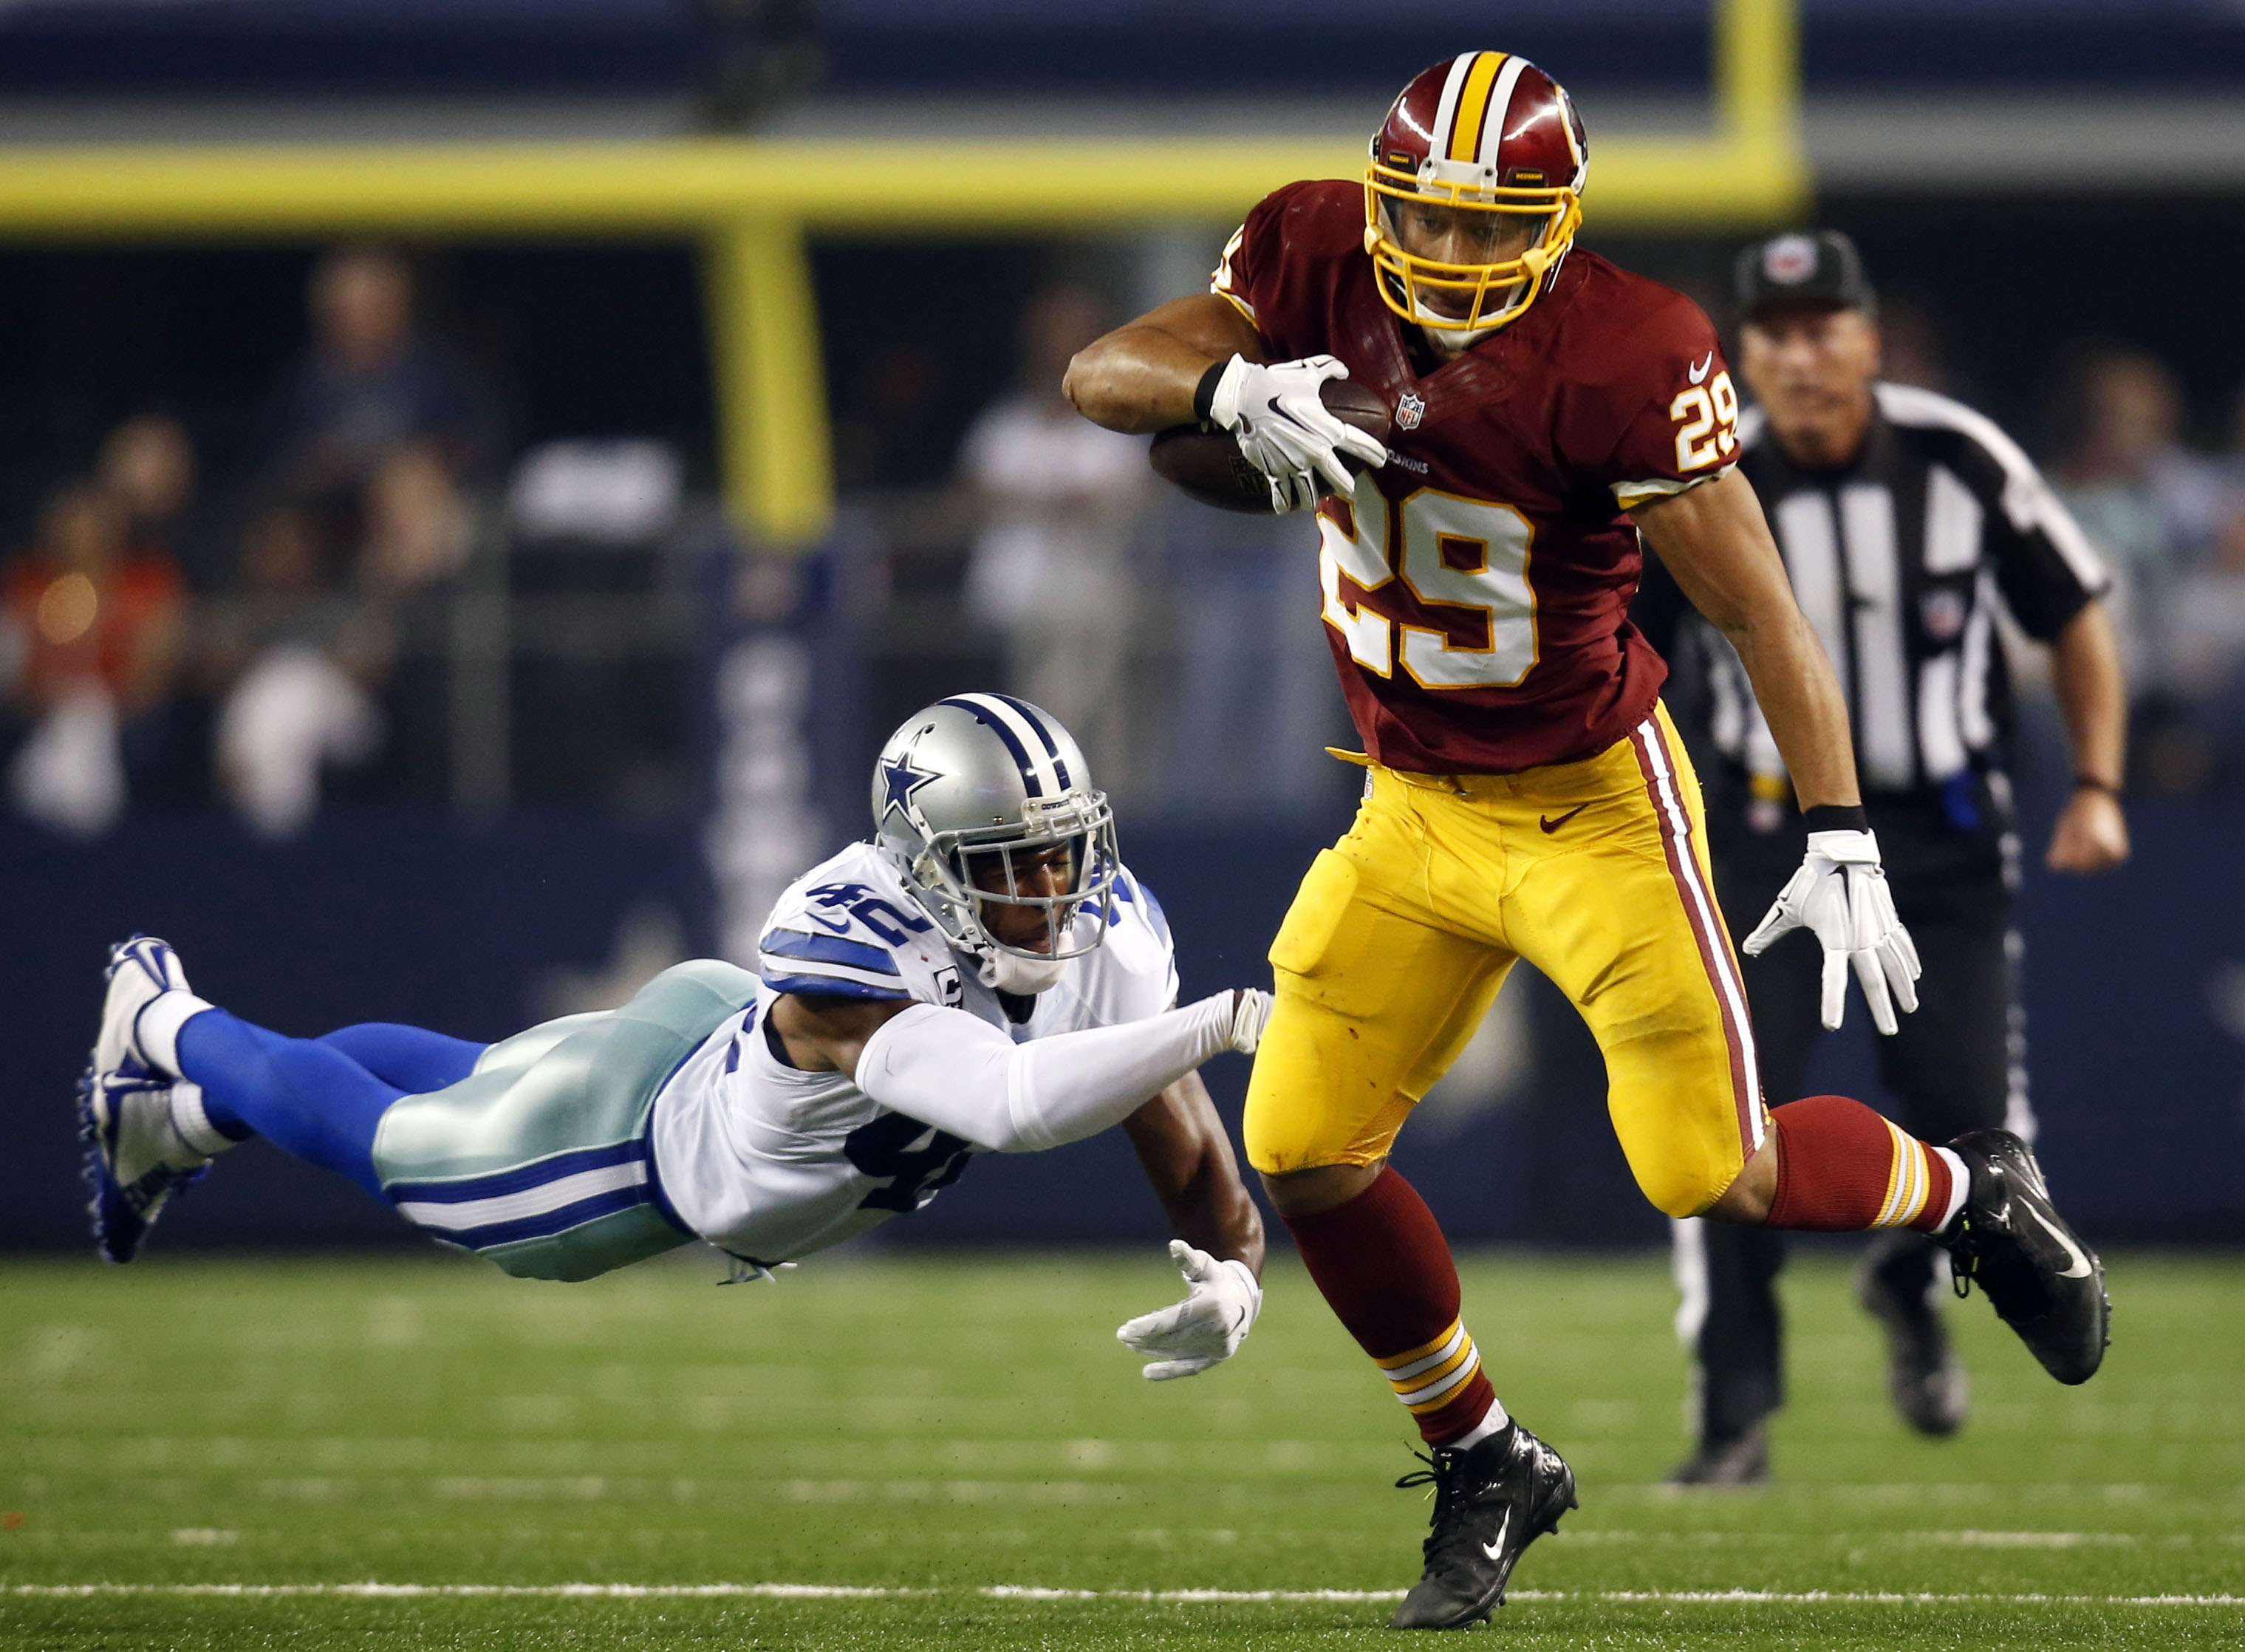 Roy Helu carries the ball last season with the Redskins. (AP Photo/Tim Sharp)